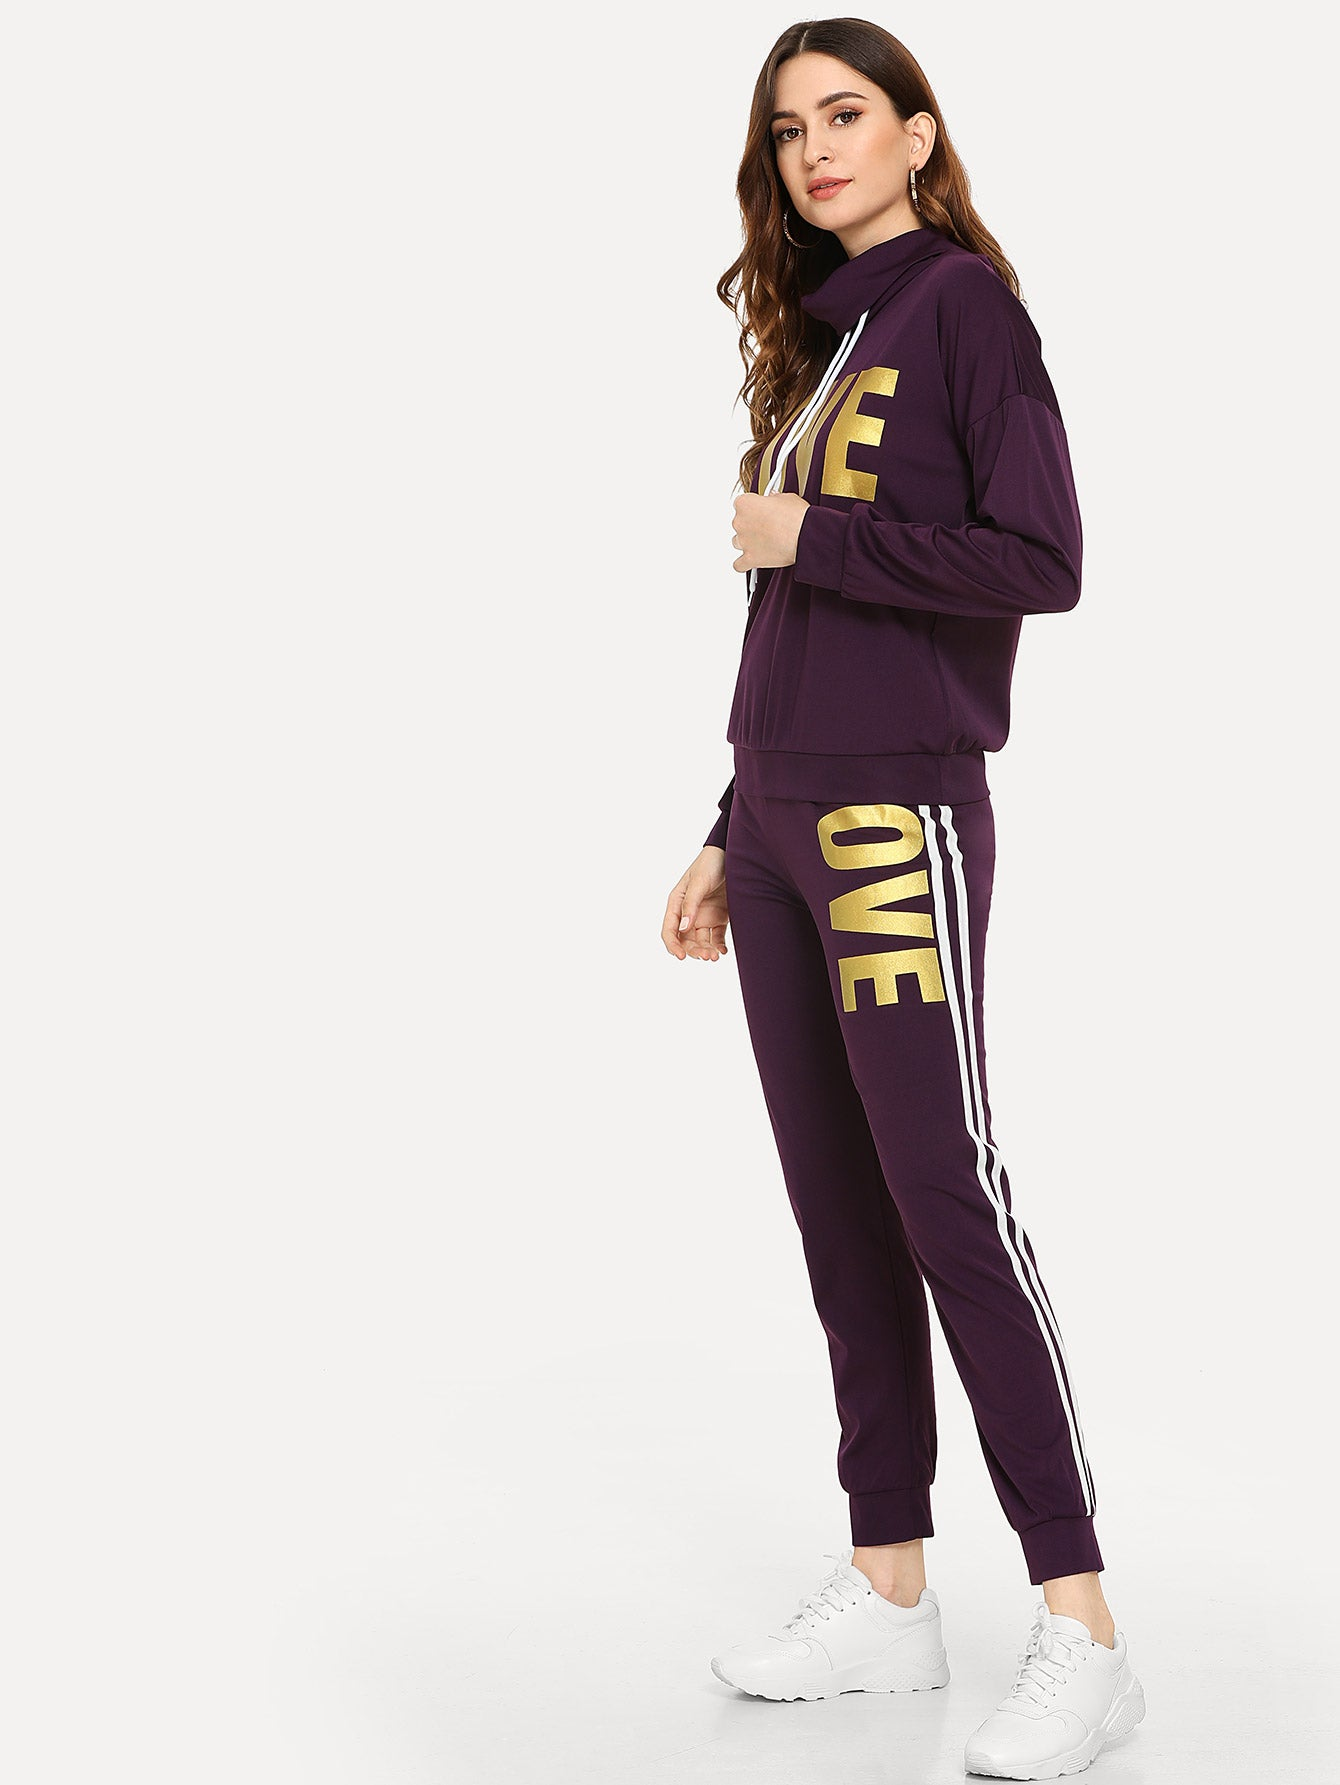 Letter Print Sweatshirt With Pants Set-Sunshine's Boutique & Gifts